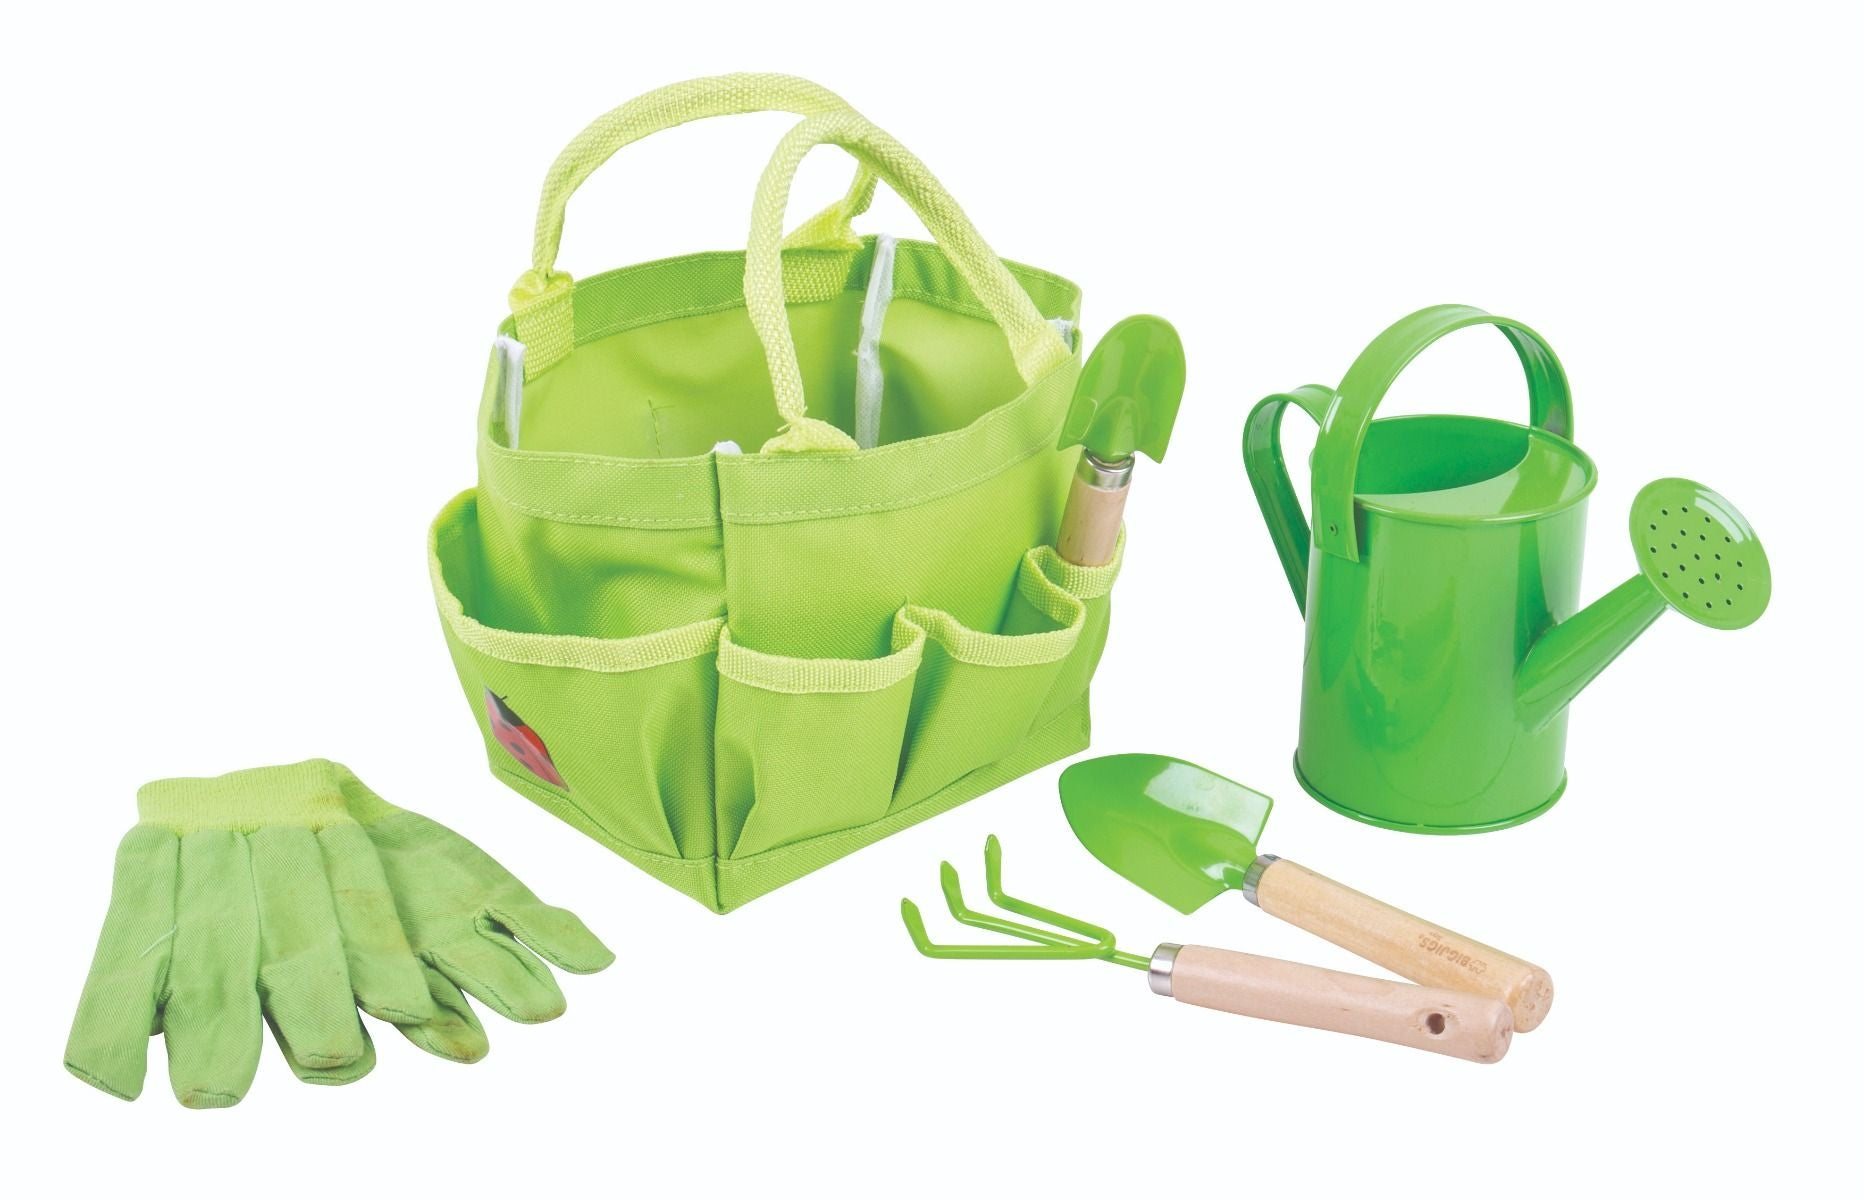 Bigjigs Small Tote Gardening Bag and Tools